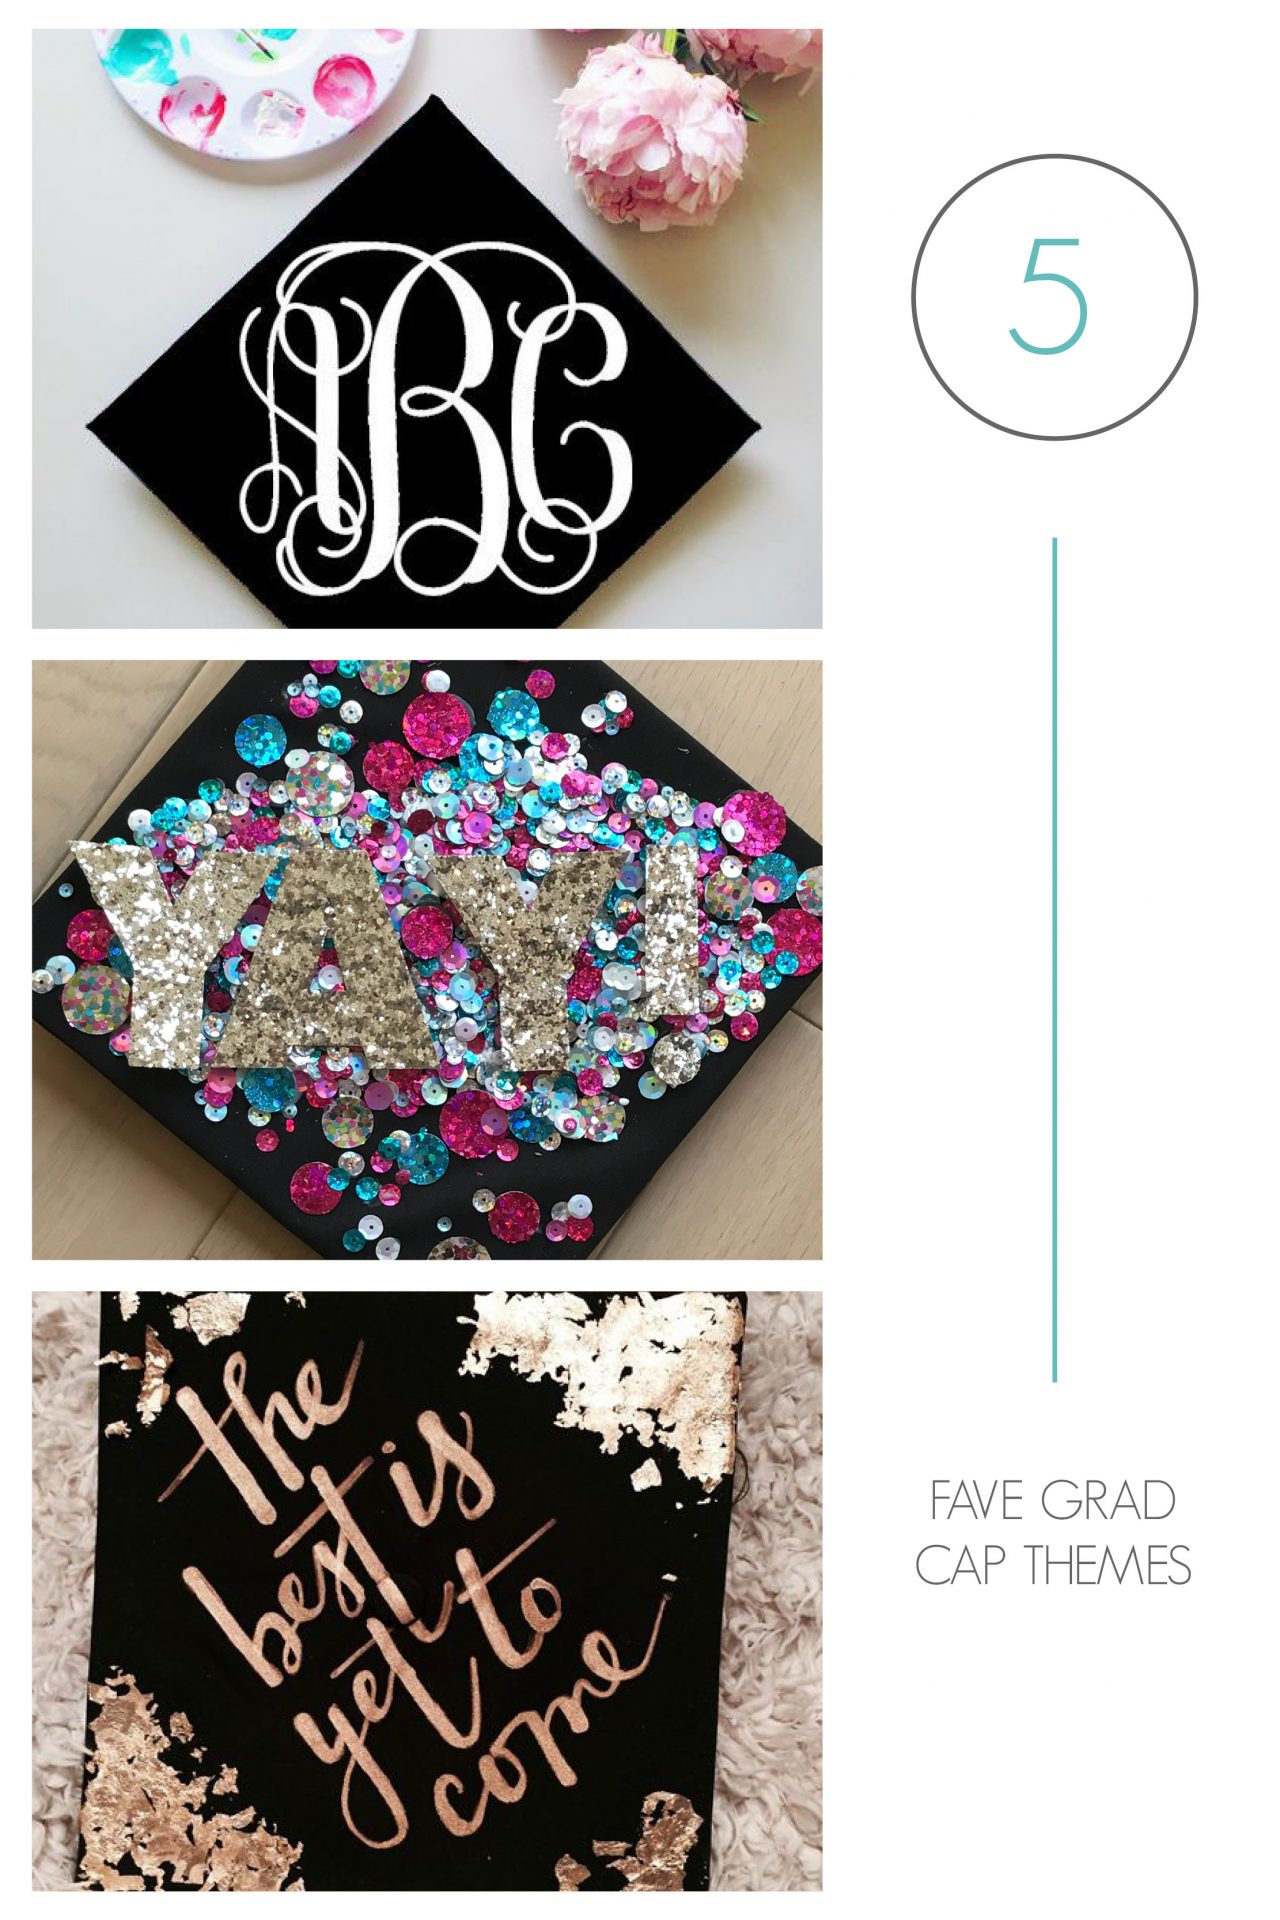 Clever Guy Crafting Ultimate Grad Cap Series Part From Our Grad Cap Design Mes Greek Designs Grad Cap Decoration Contest Grad Cap Decoration decor Grad Cap Decoration